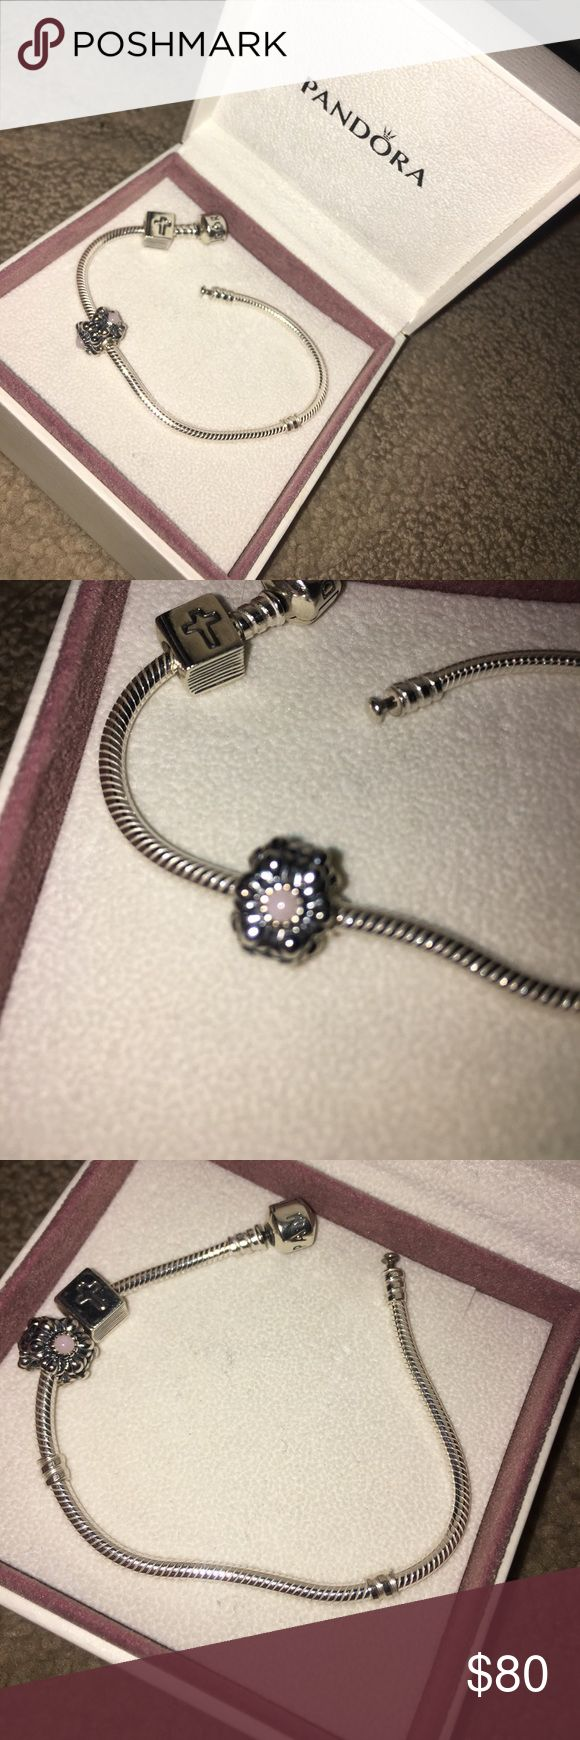 Pandora bracelet with charms Has bible charm and October birth stone! Never been worn. Pandora Jewelry Bracelets